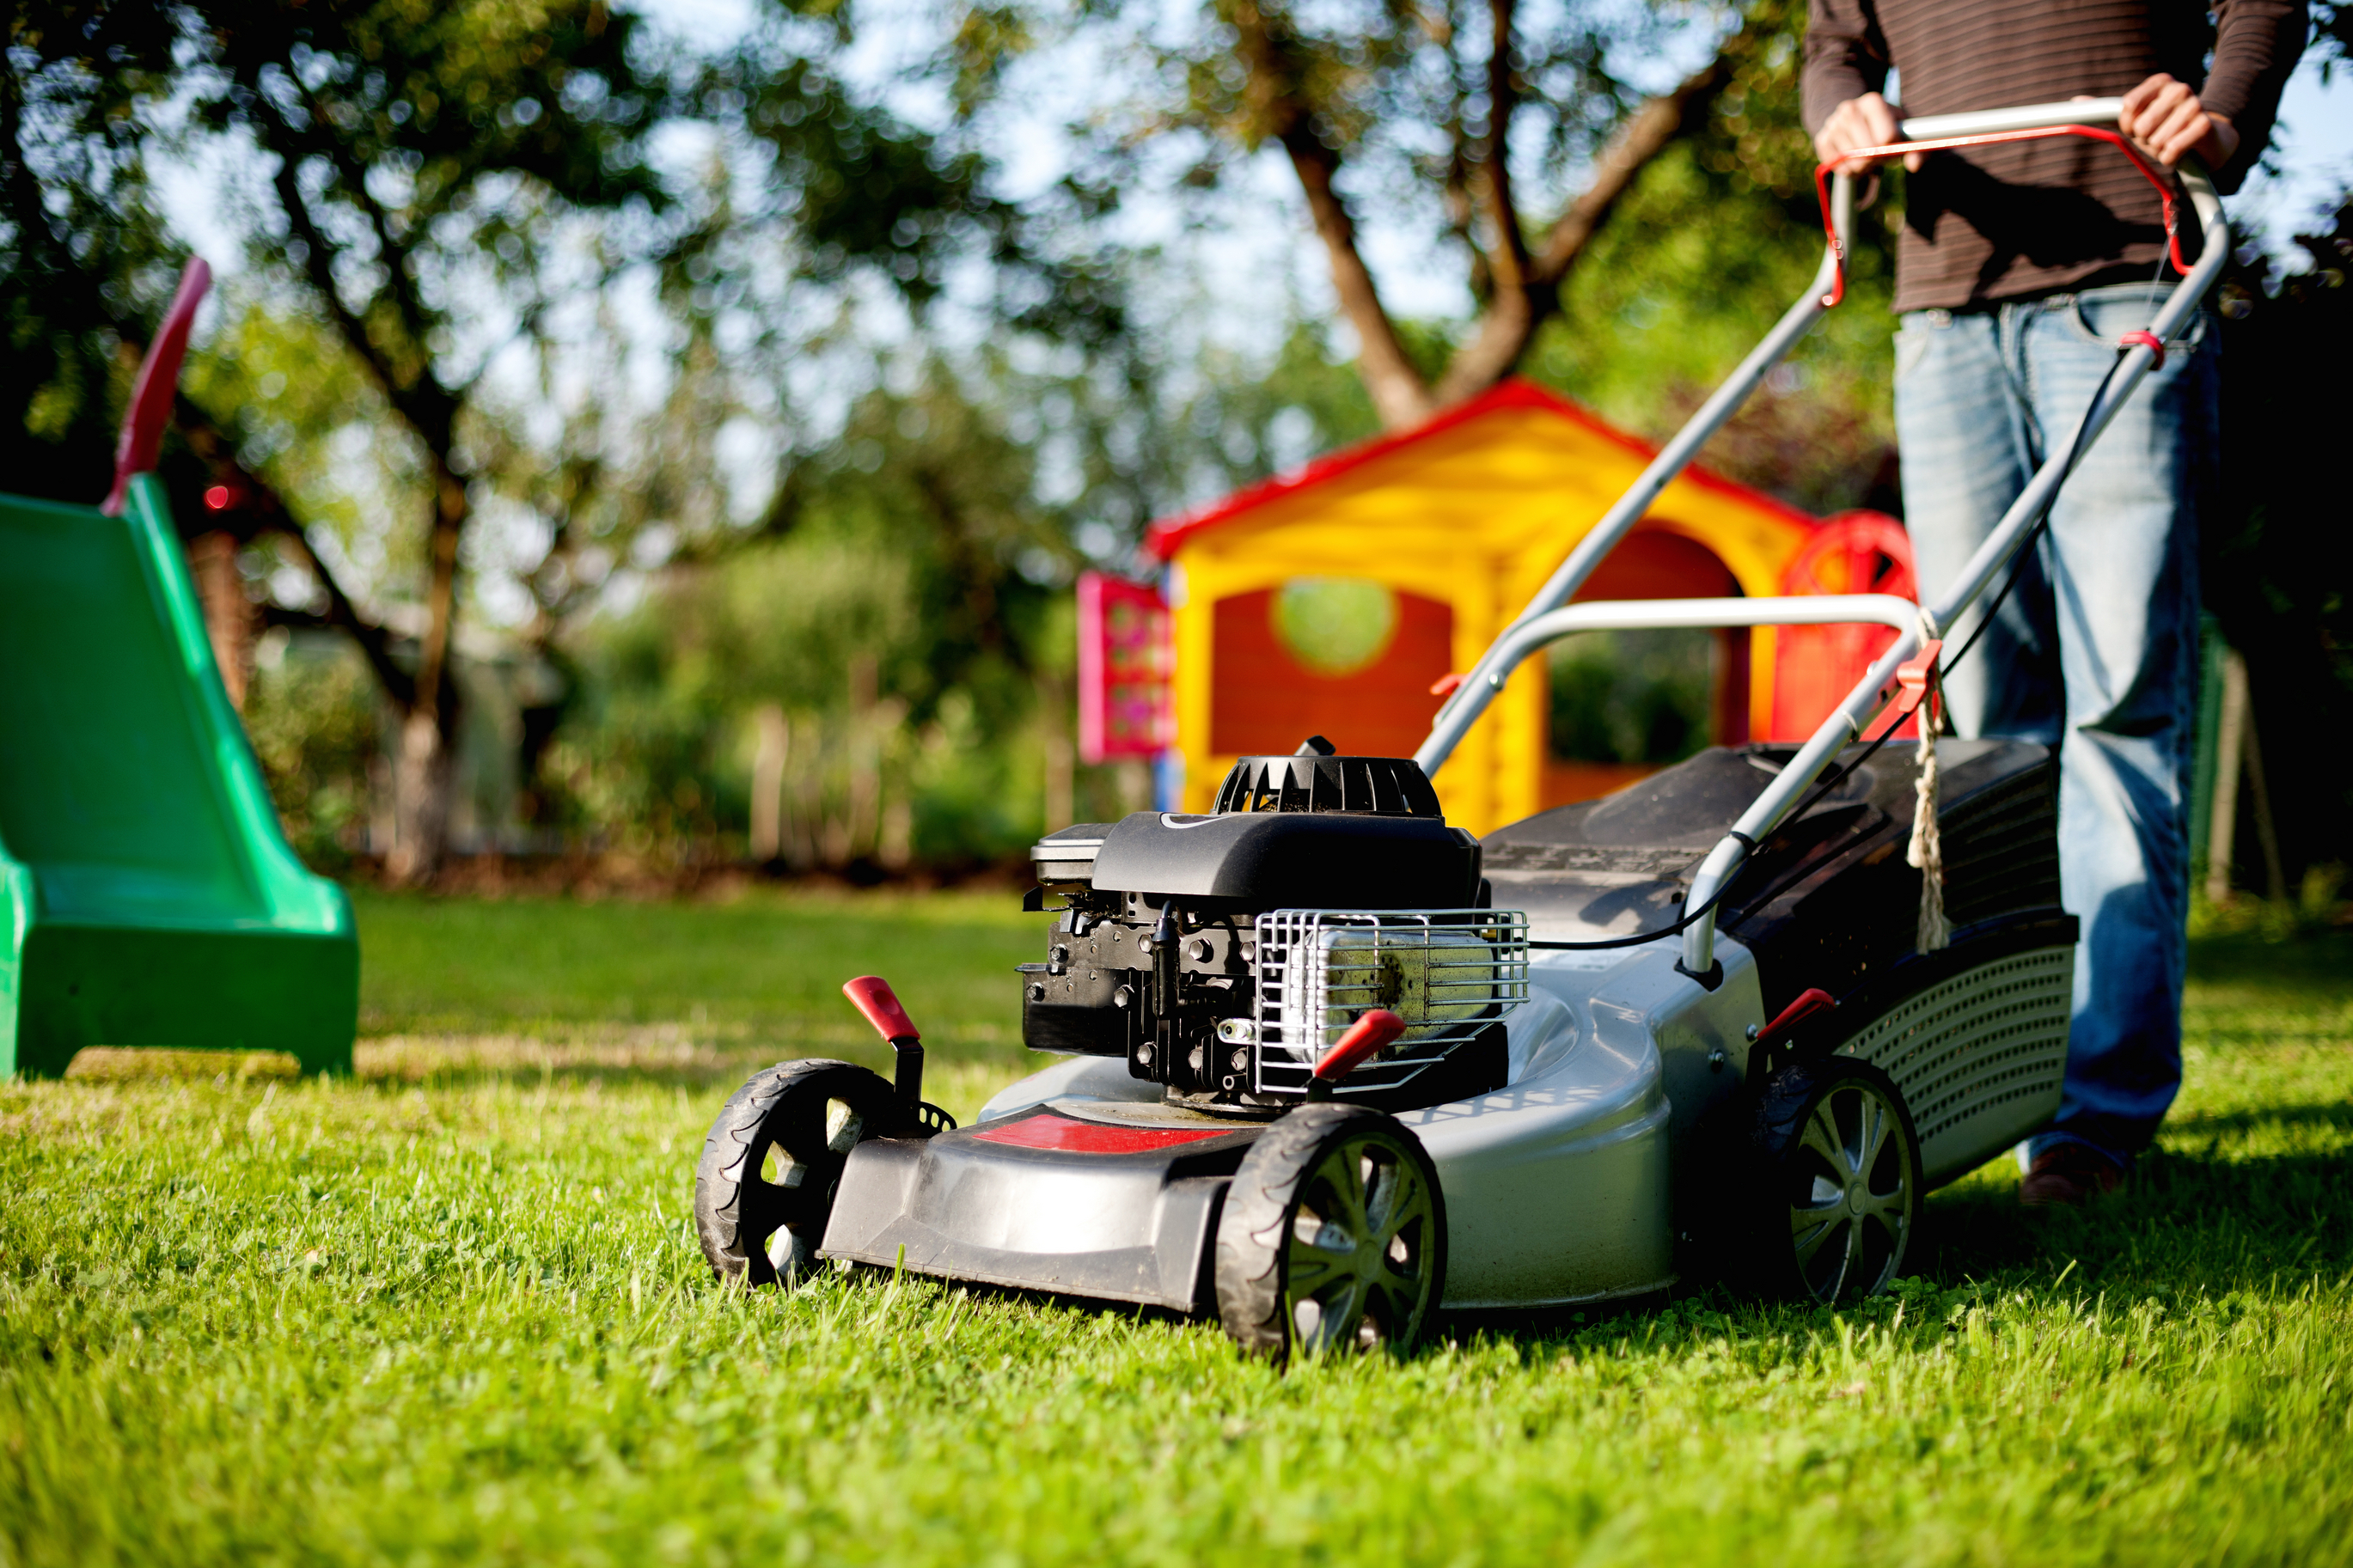 Essential Sir Walter Turf Lawn Care Tips for Spring Season